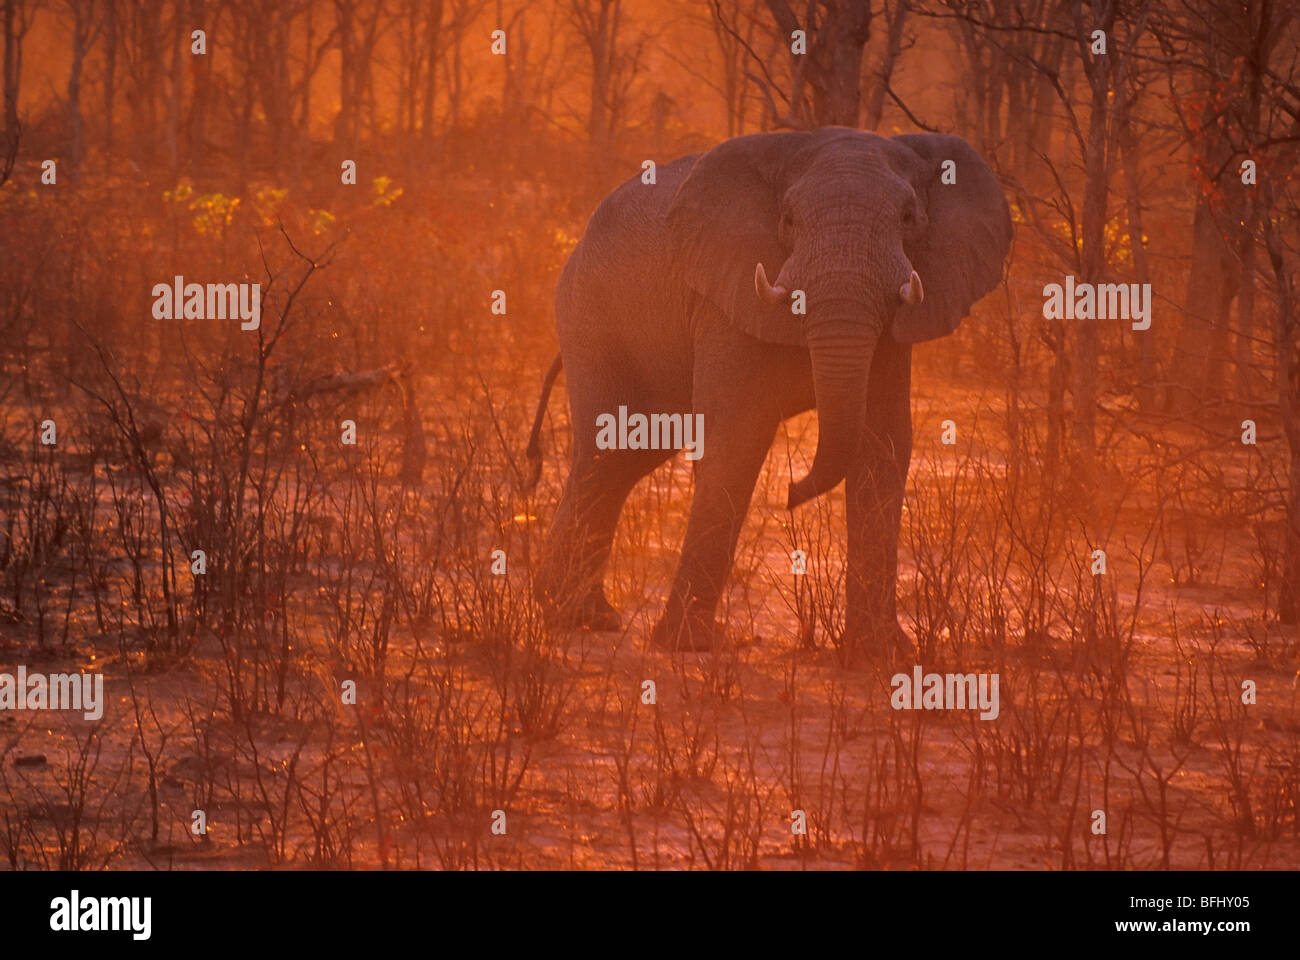 Elephant (Elephantidae) at sunset, Savuti, Chobe National Park, Botswana, Africa Stock Photo